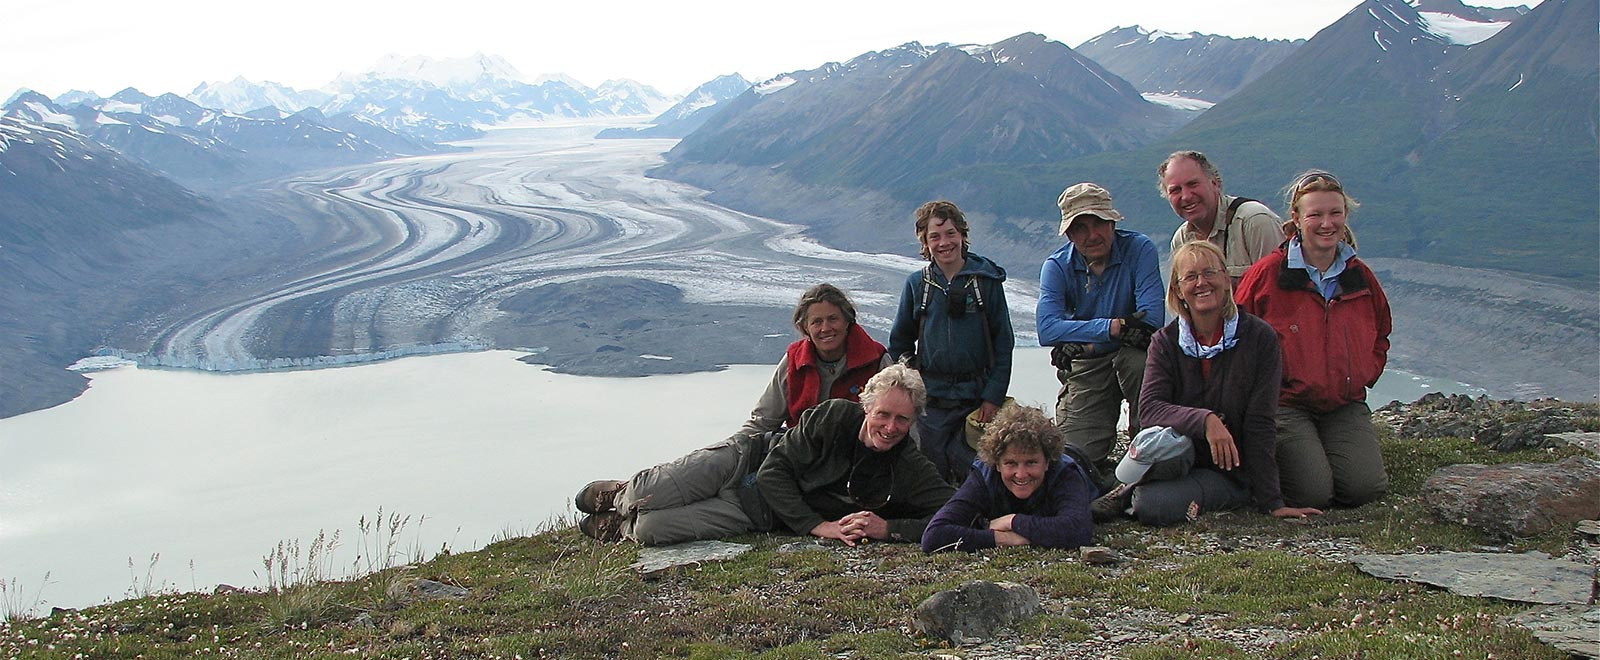 Group on Goatherd